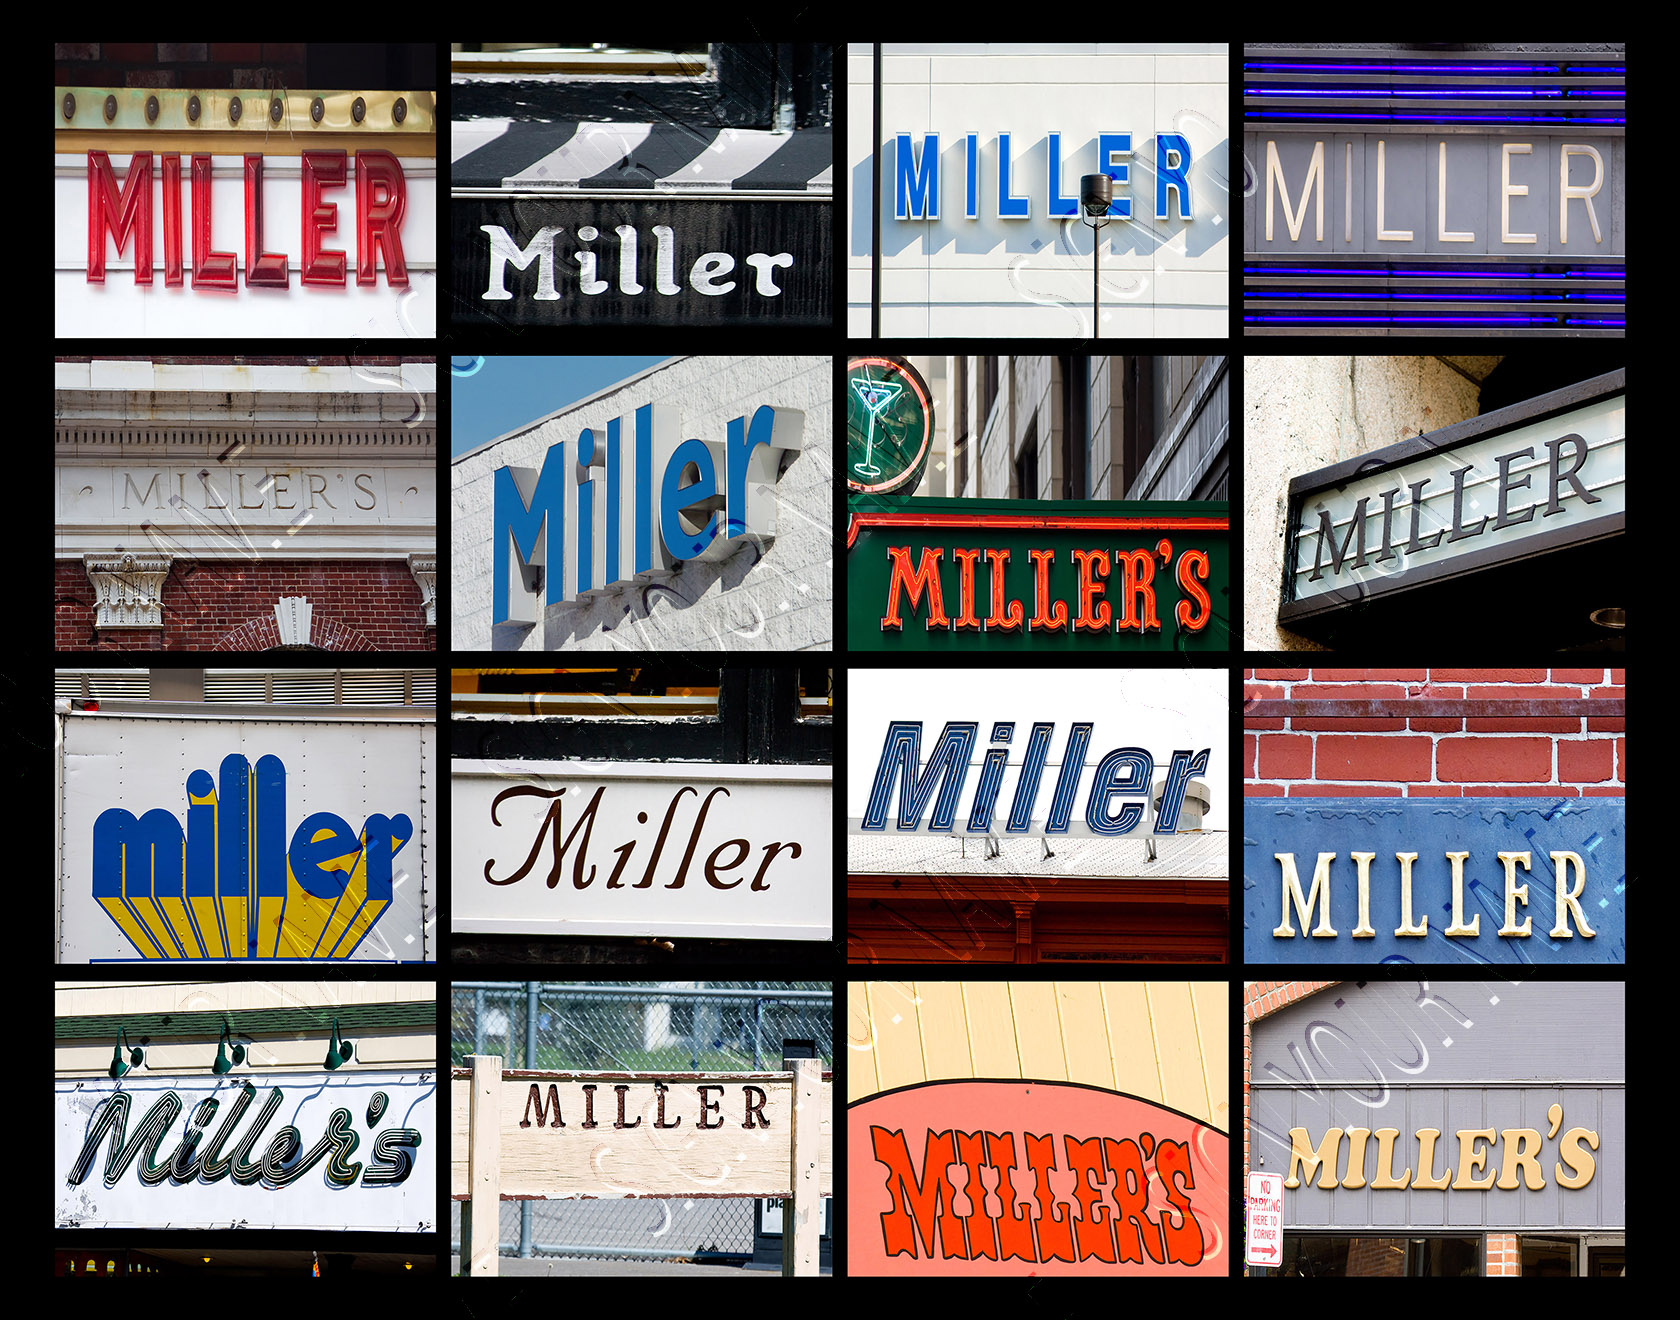 https://www.etsy.com/listing/203525836/personalized-poster-featuring-miller?ref=shop_home_active_2&ga_search_query=miller